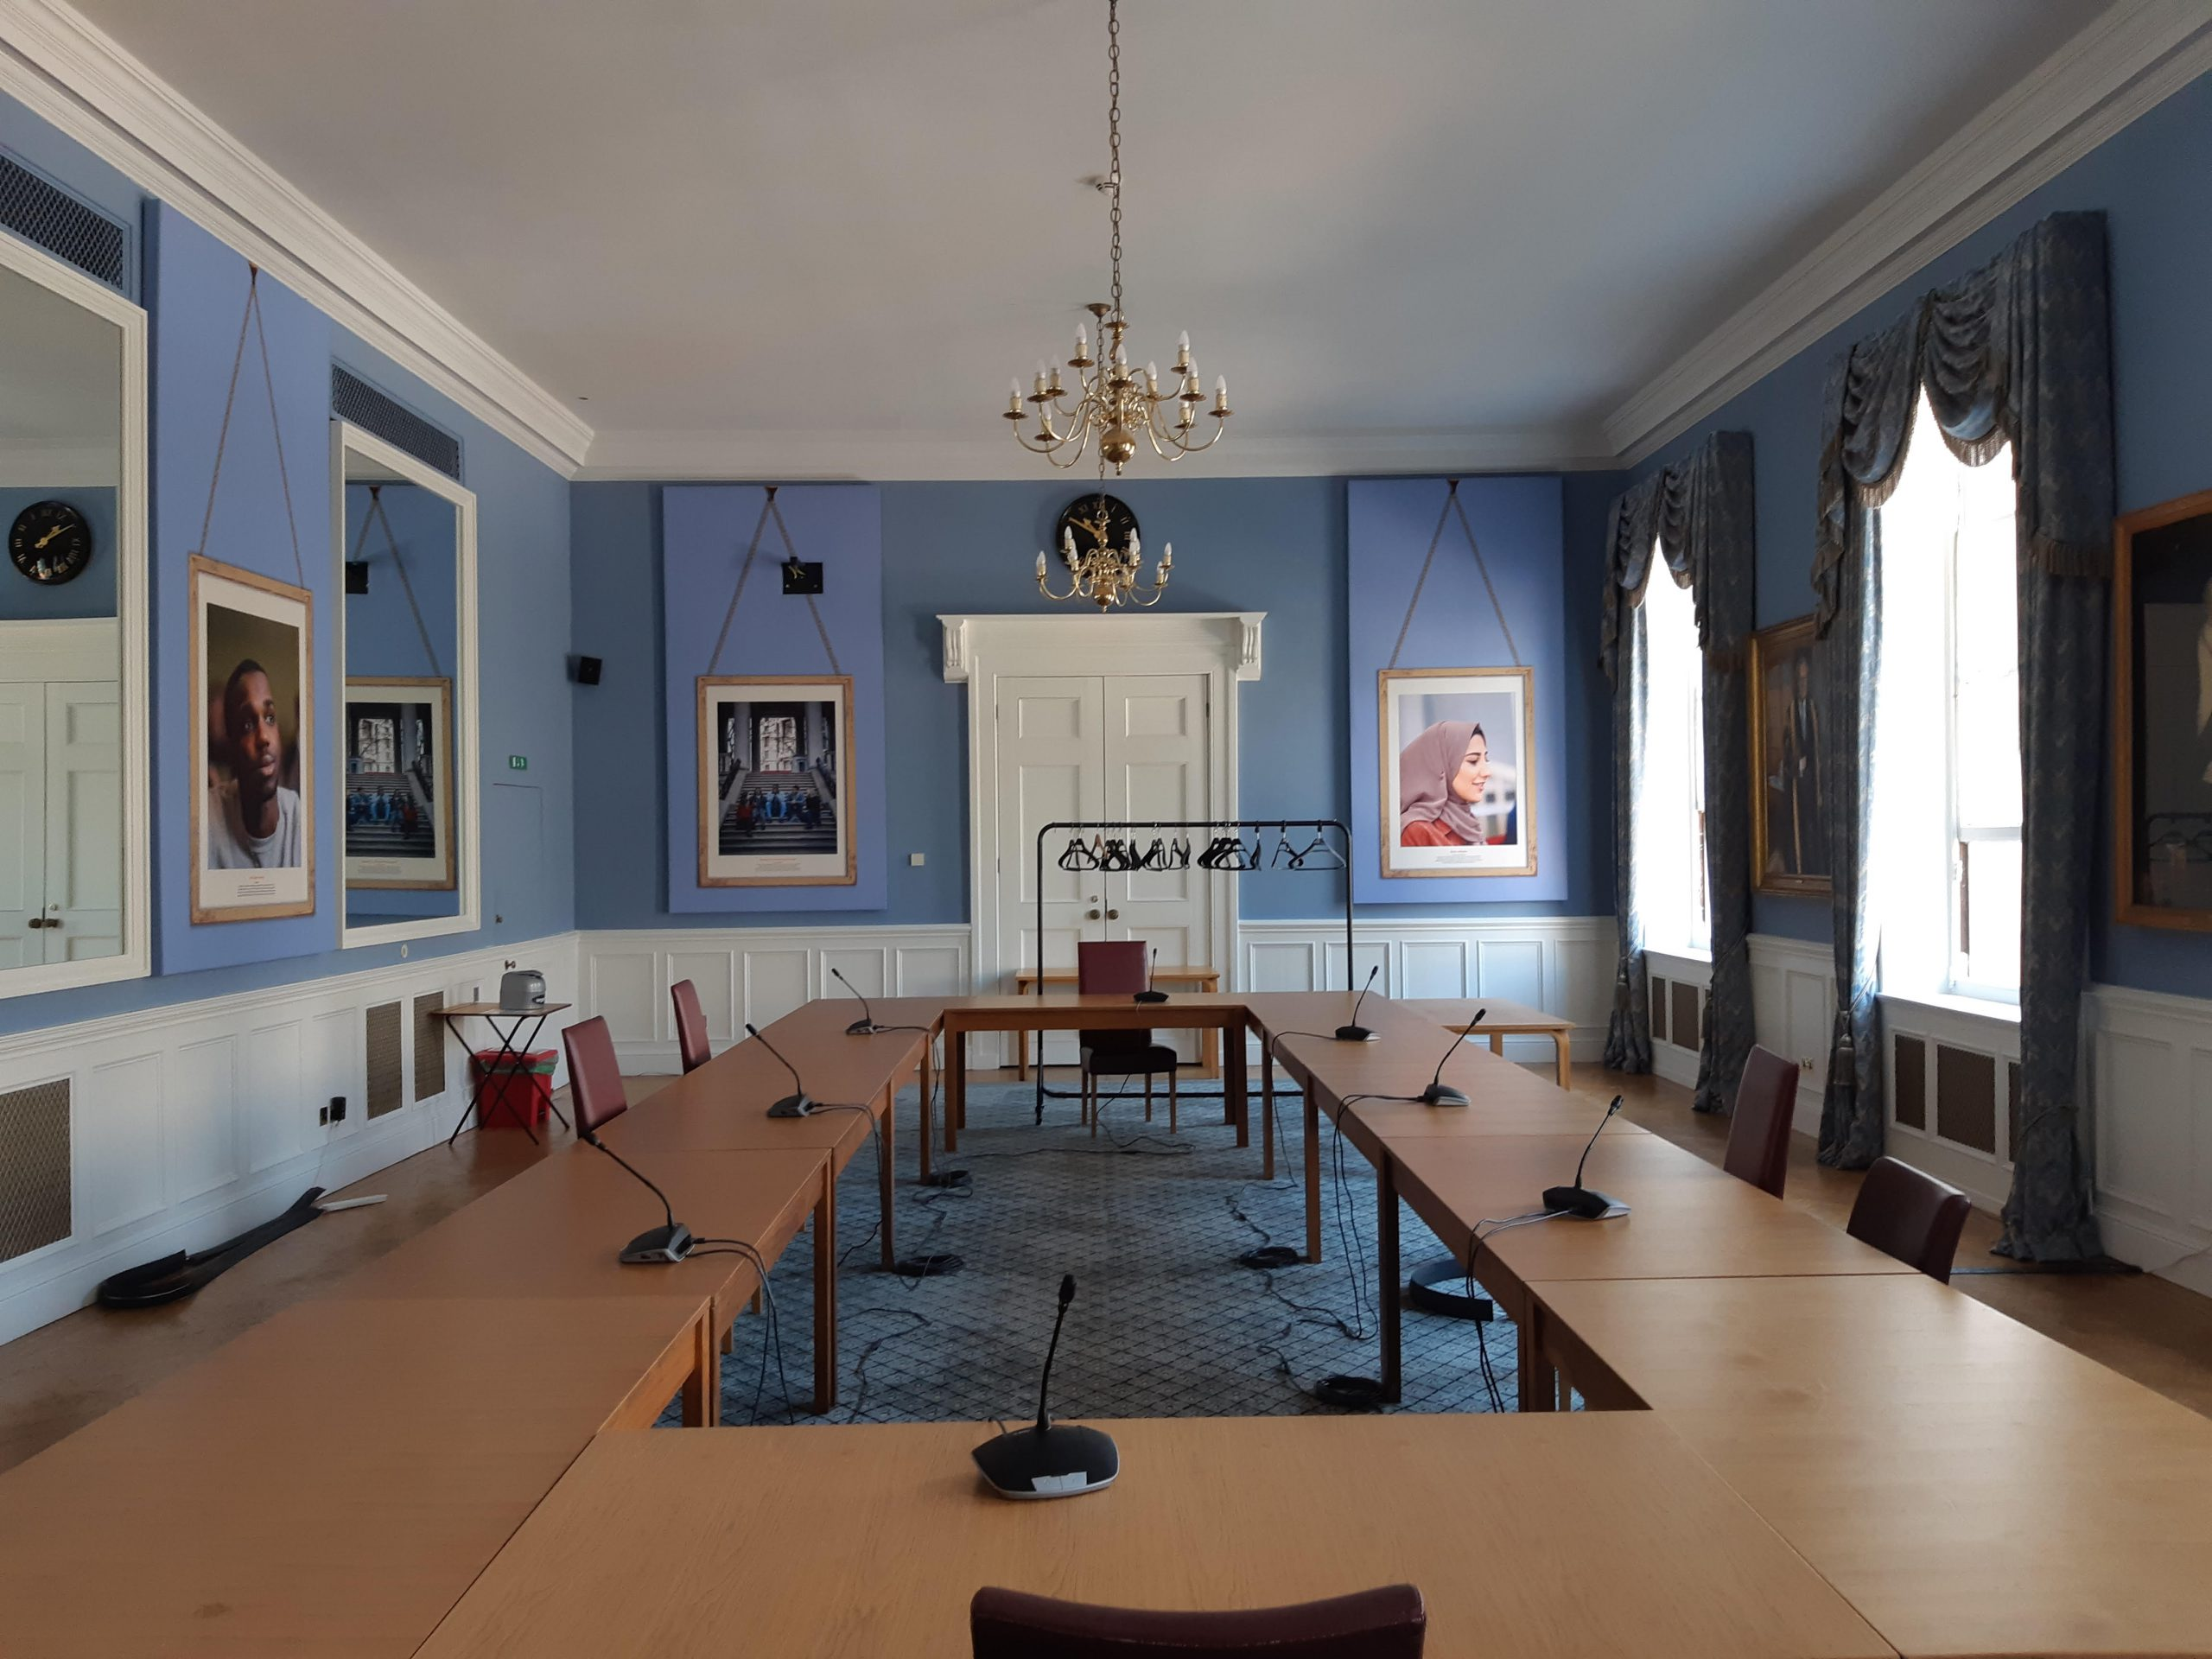 Image of the council room set up for a committee meeting.